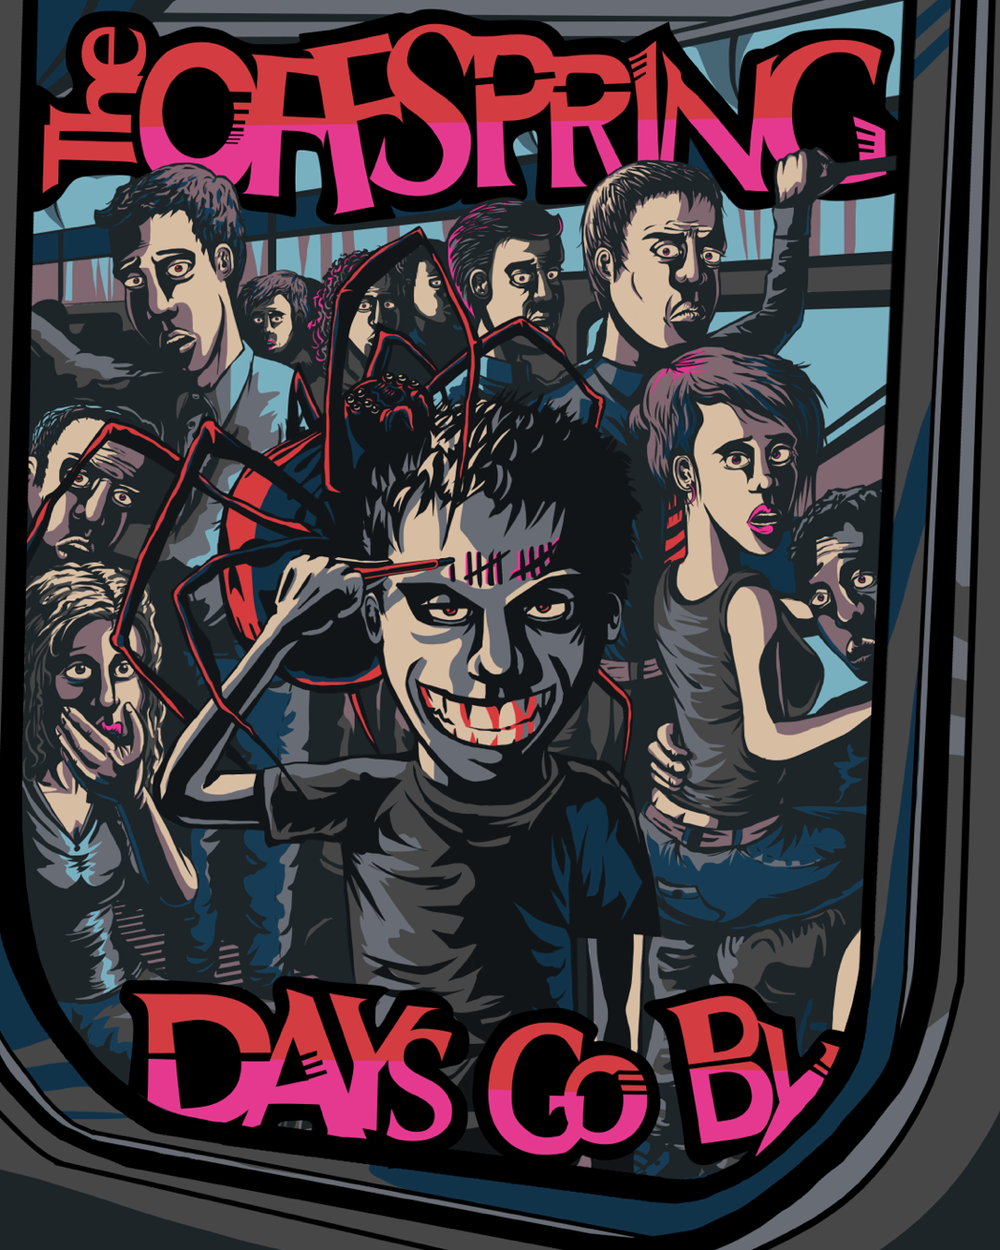 """Concept poster for the new album and tour by the Offspring """"Days Go By"""". This design was top 3 in voting and was shown to the band as a final option."""